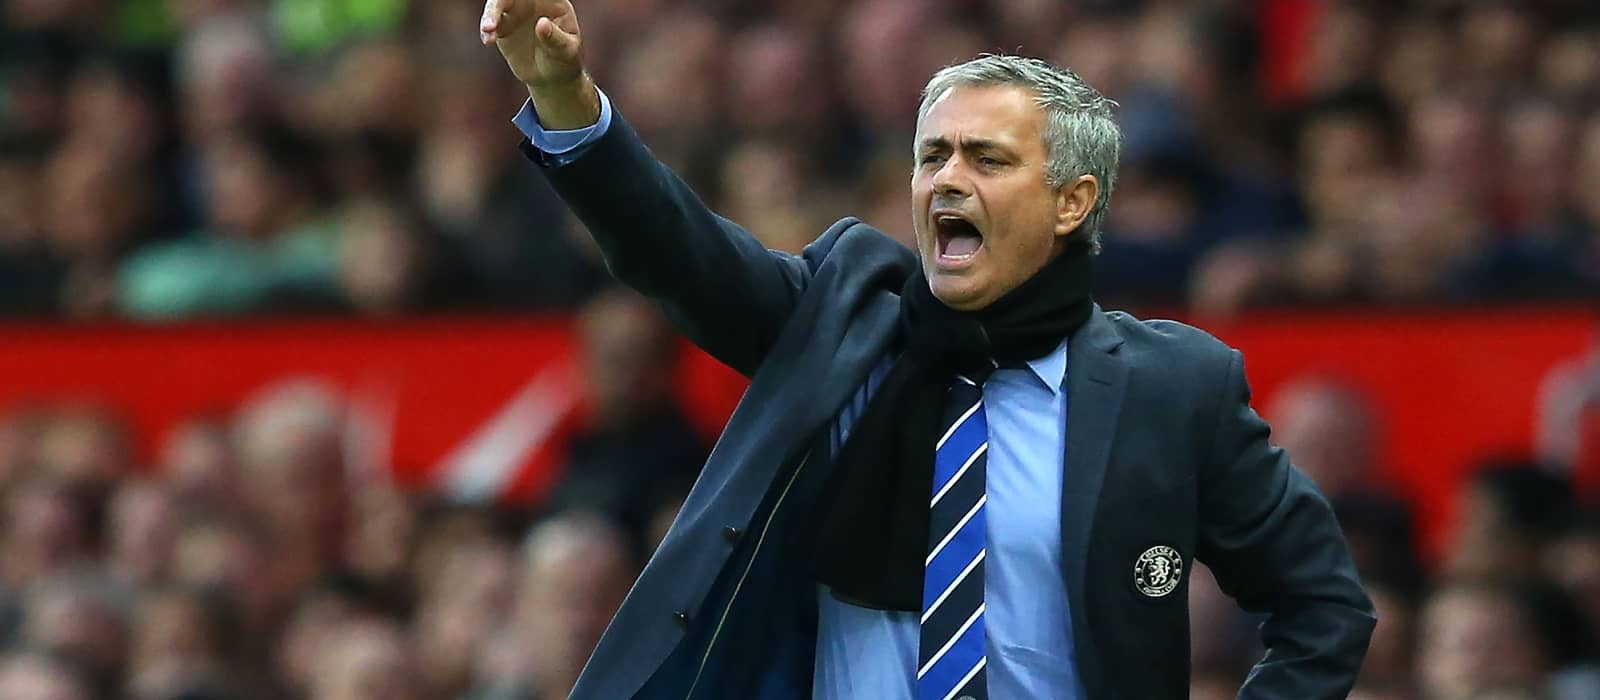 Jose Mourinho tells friends he's heading to Manchester United – report